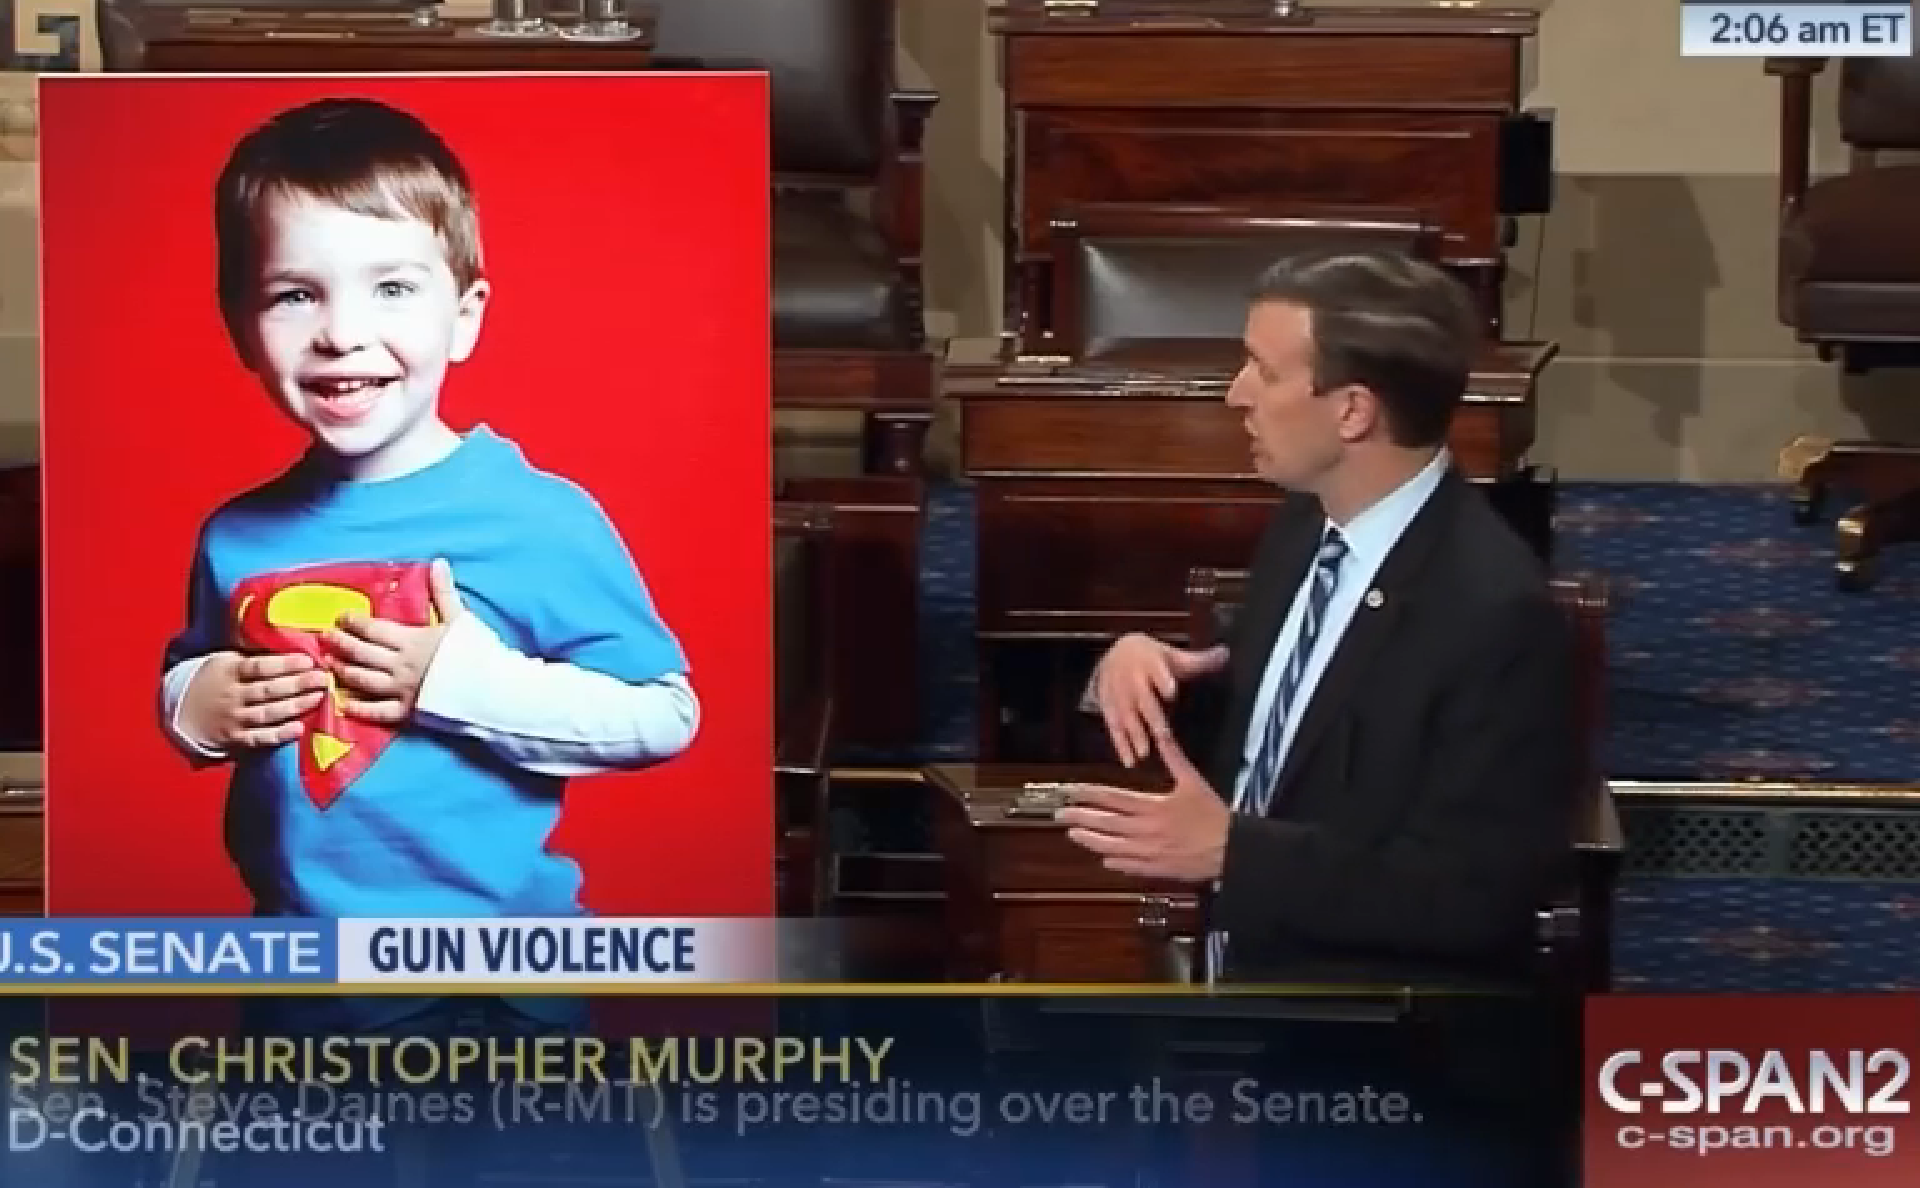 Murphy ends filibuster saying two gun measures will get votes